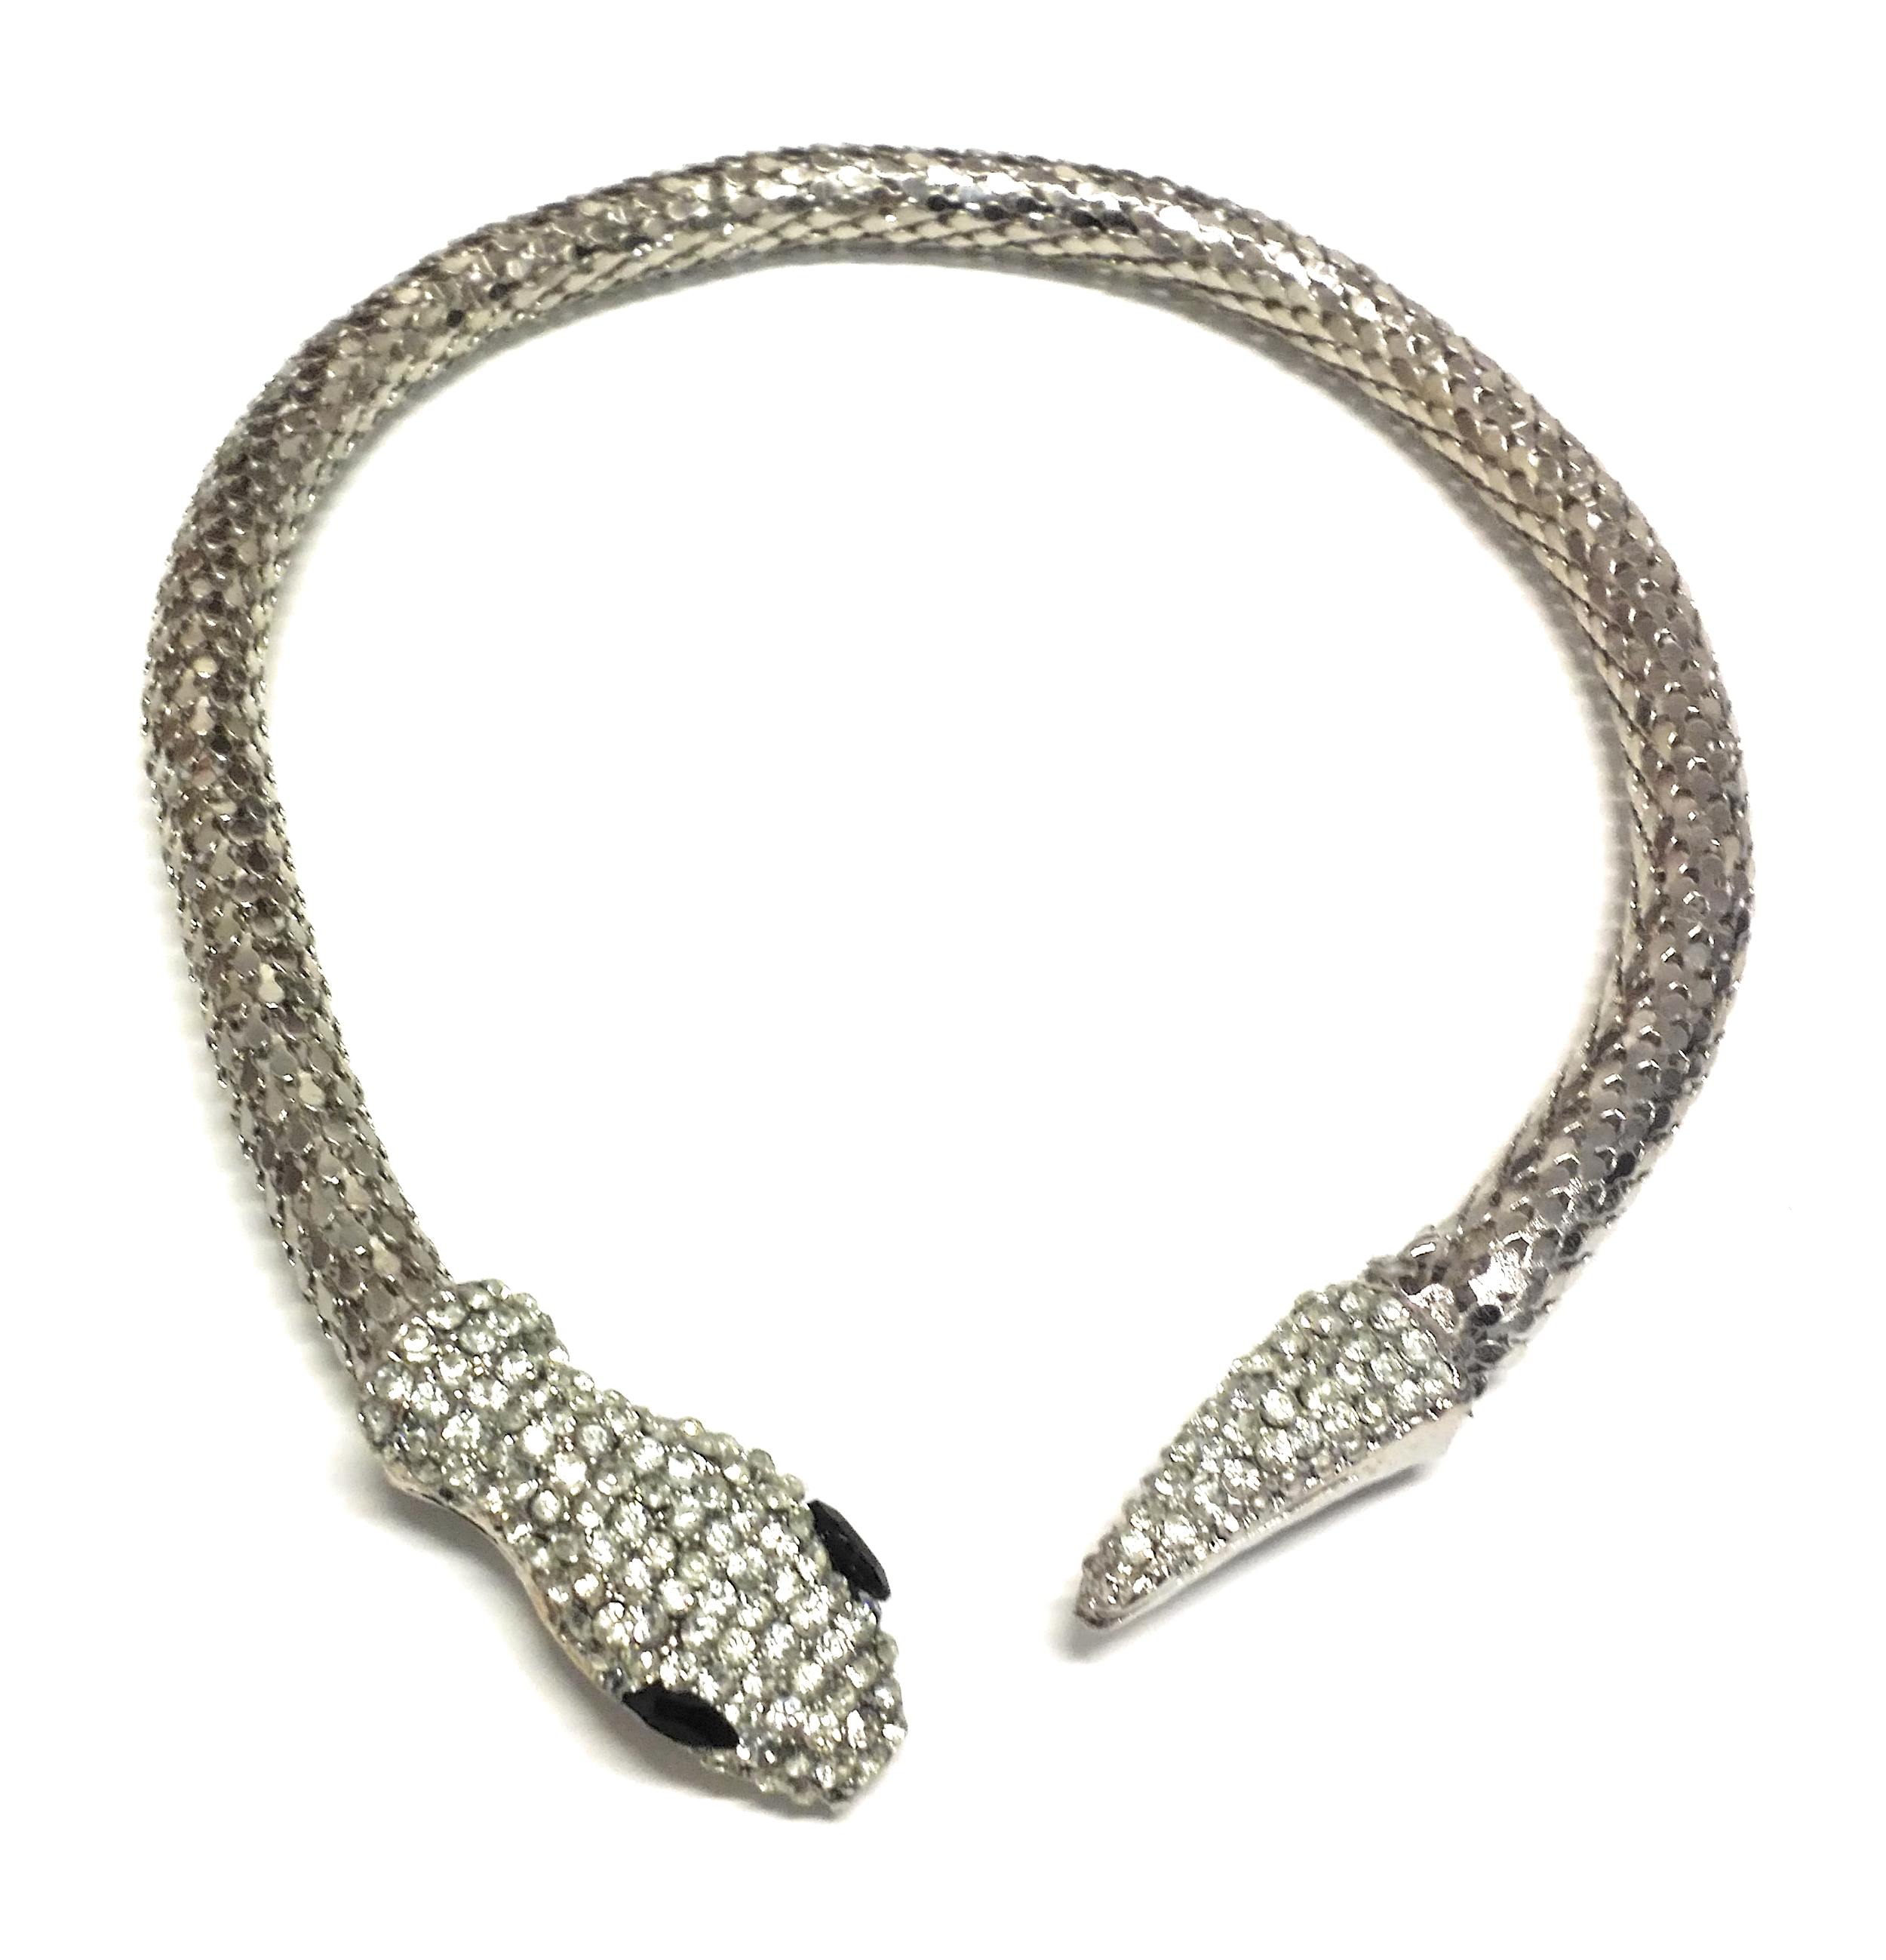 Egyptian Asp Metal Snake Costume Choker Necklace, Silver, One Size